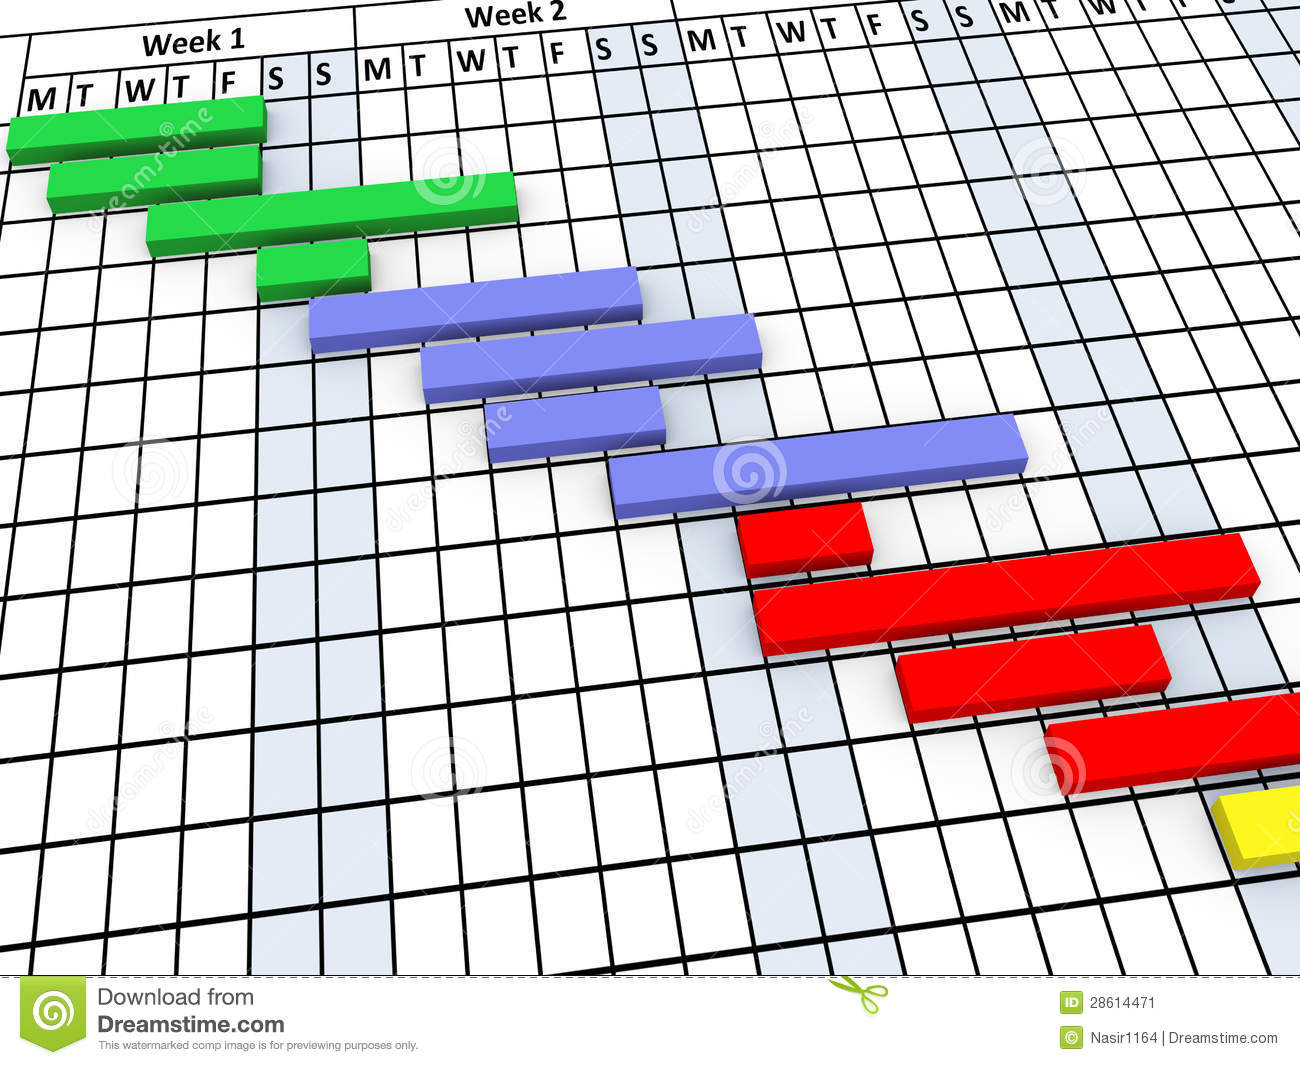 gannt project Online gantt chart software that allows you to create and share gantt charts online with drag and drop simplicity.